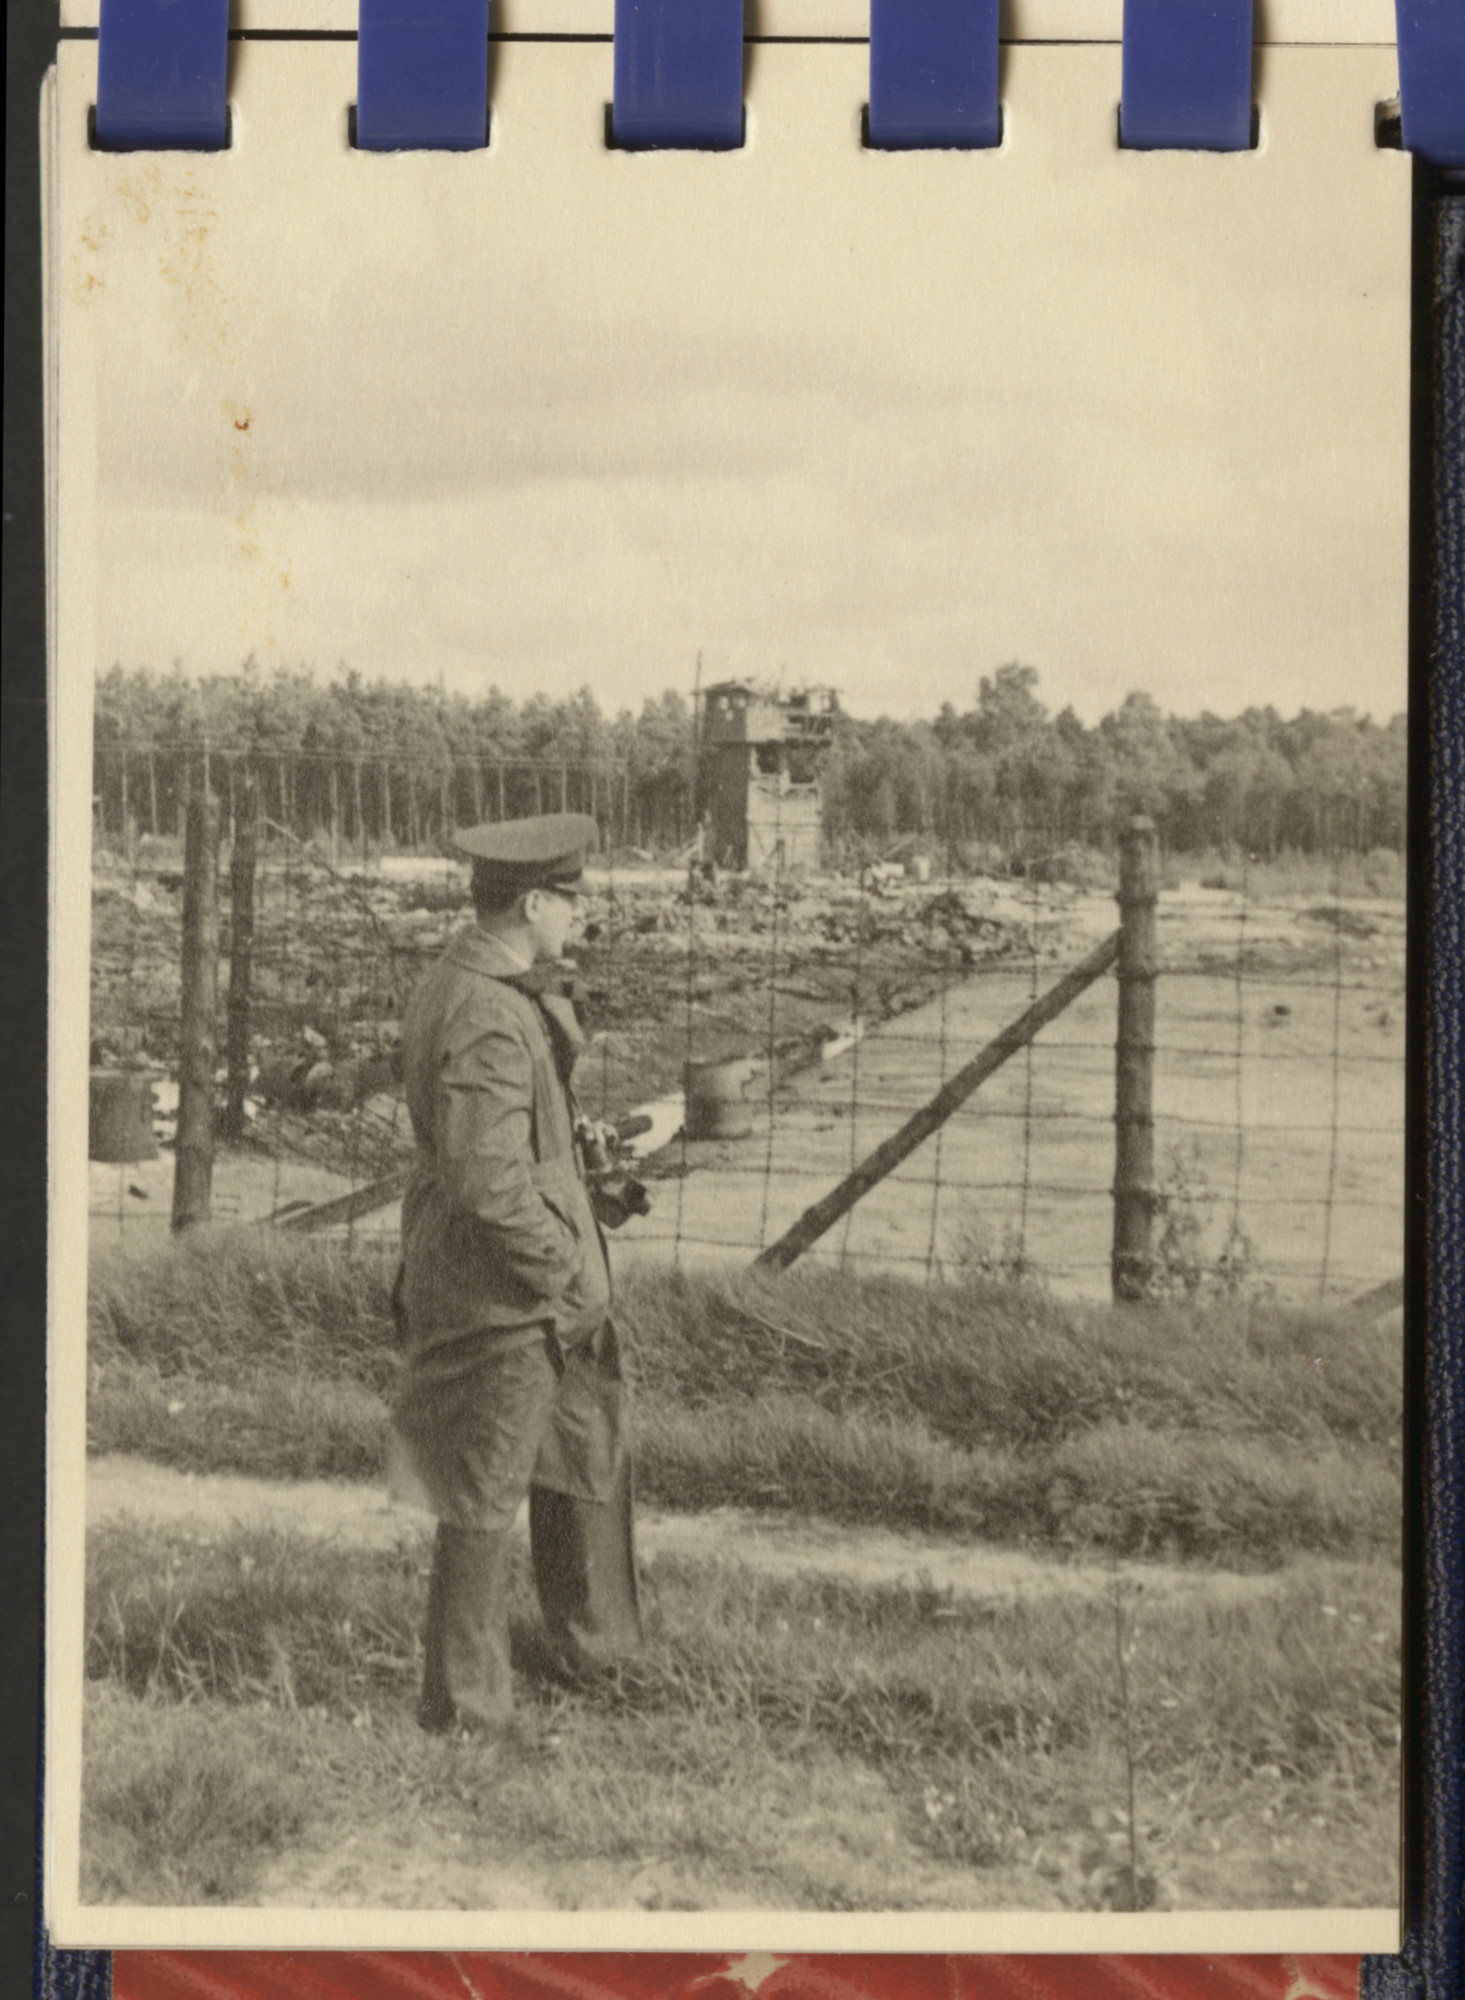 One page from a small photograph booklet containing images of Bergen-Belsen shortly after liberation.  A British [?] officer  looks out over the liberated camp.